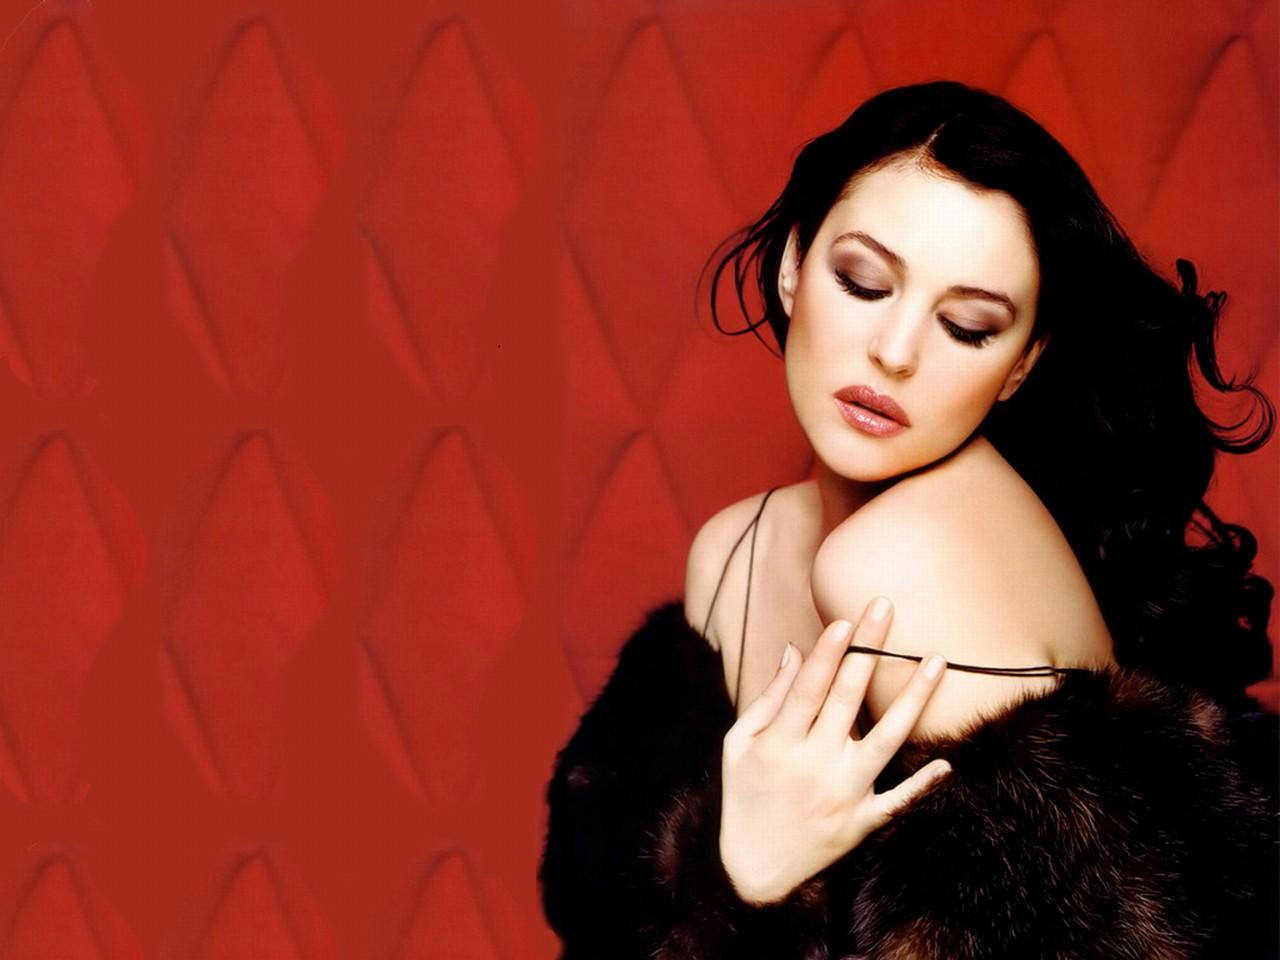 monica bellucci hd nude wallpapers